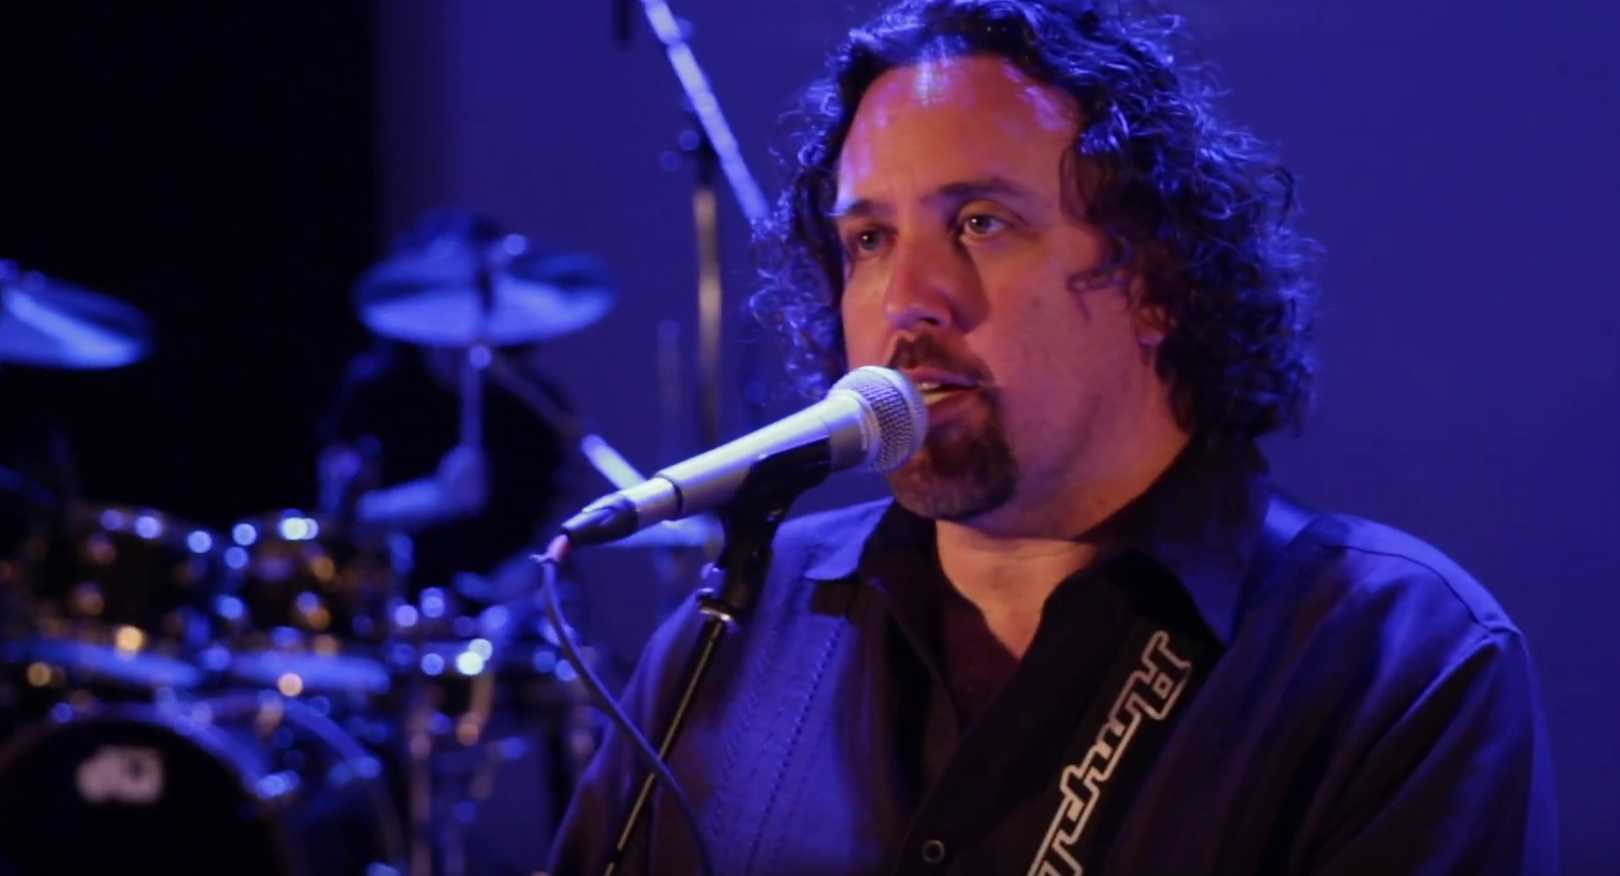 """Dave Kerzner premiere's """"Chain Reaction"""" video from new album 'Static'"""